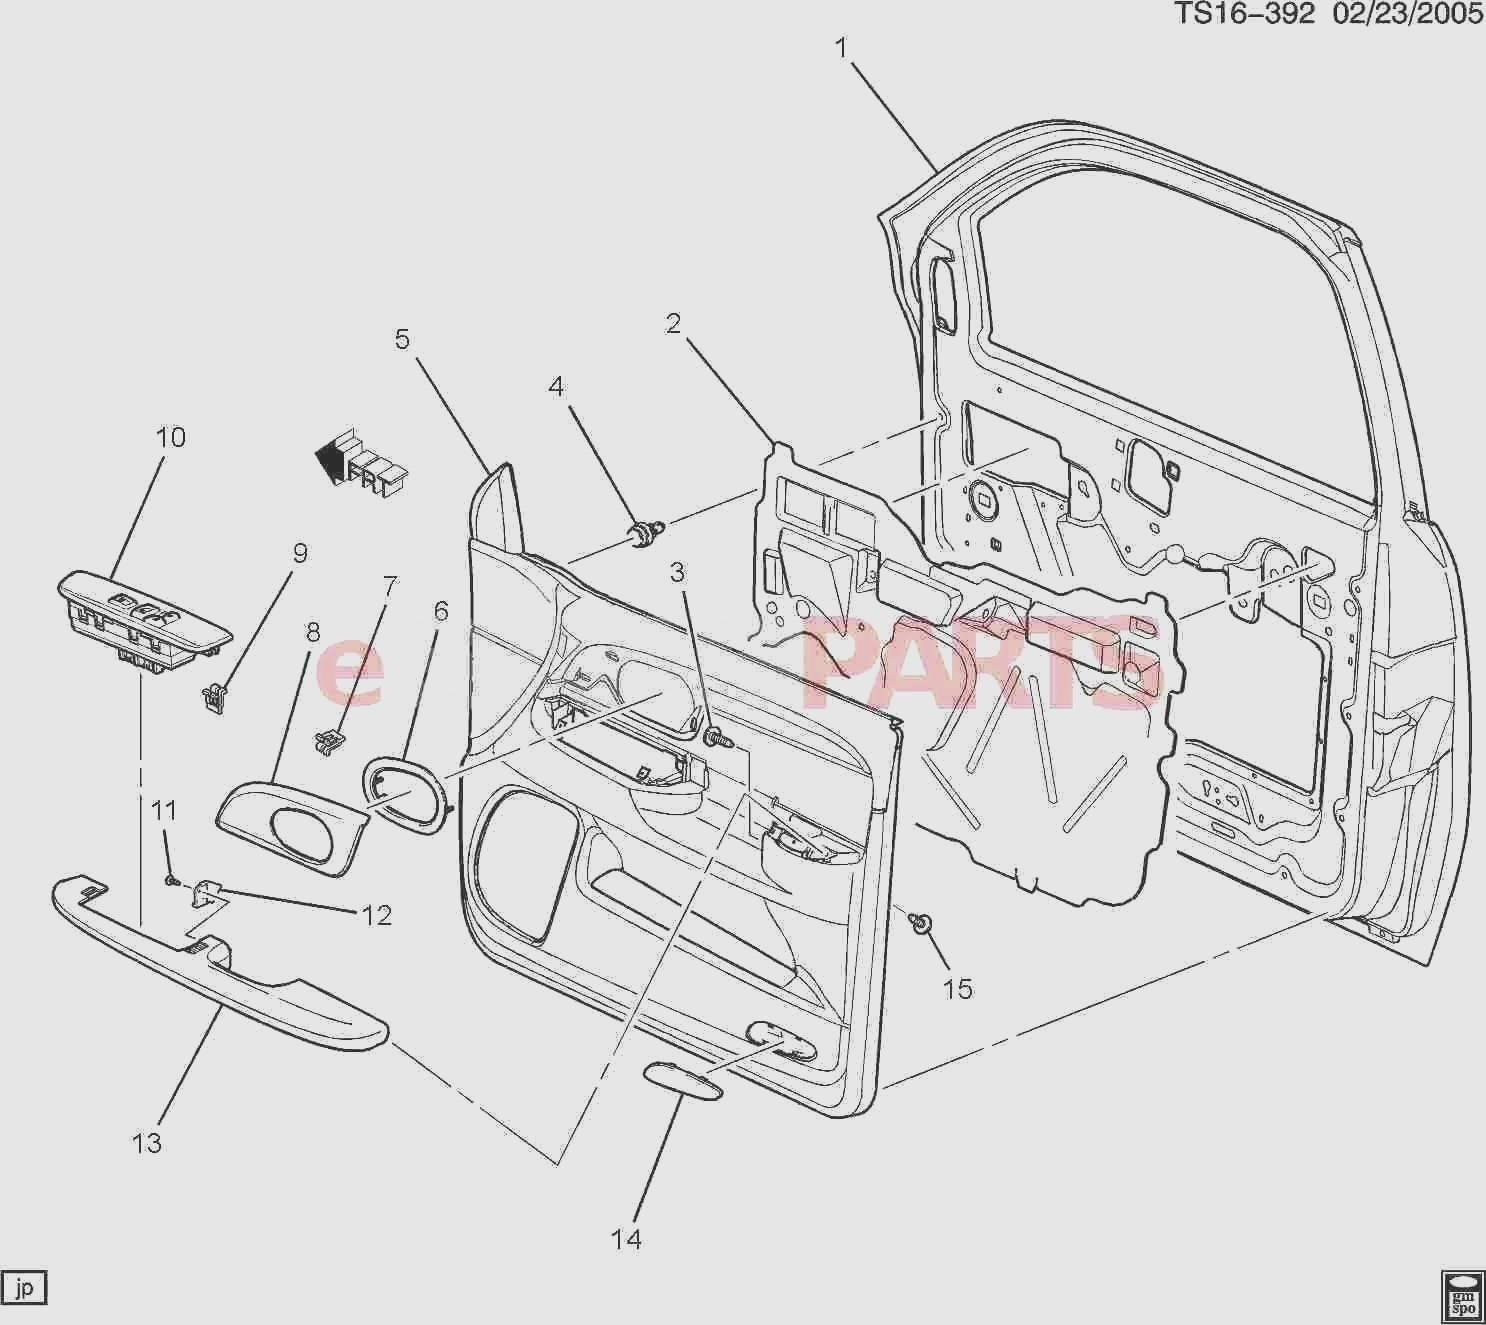 Parts Of A Car Body Diagram 6a3bd Cadillac Engine Parts Diagram Of Parts Of A Car Body Diagram